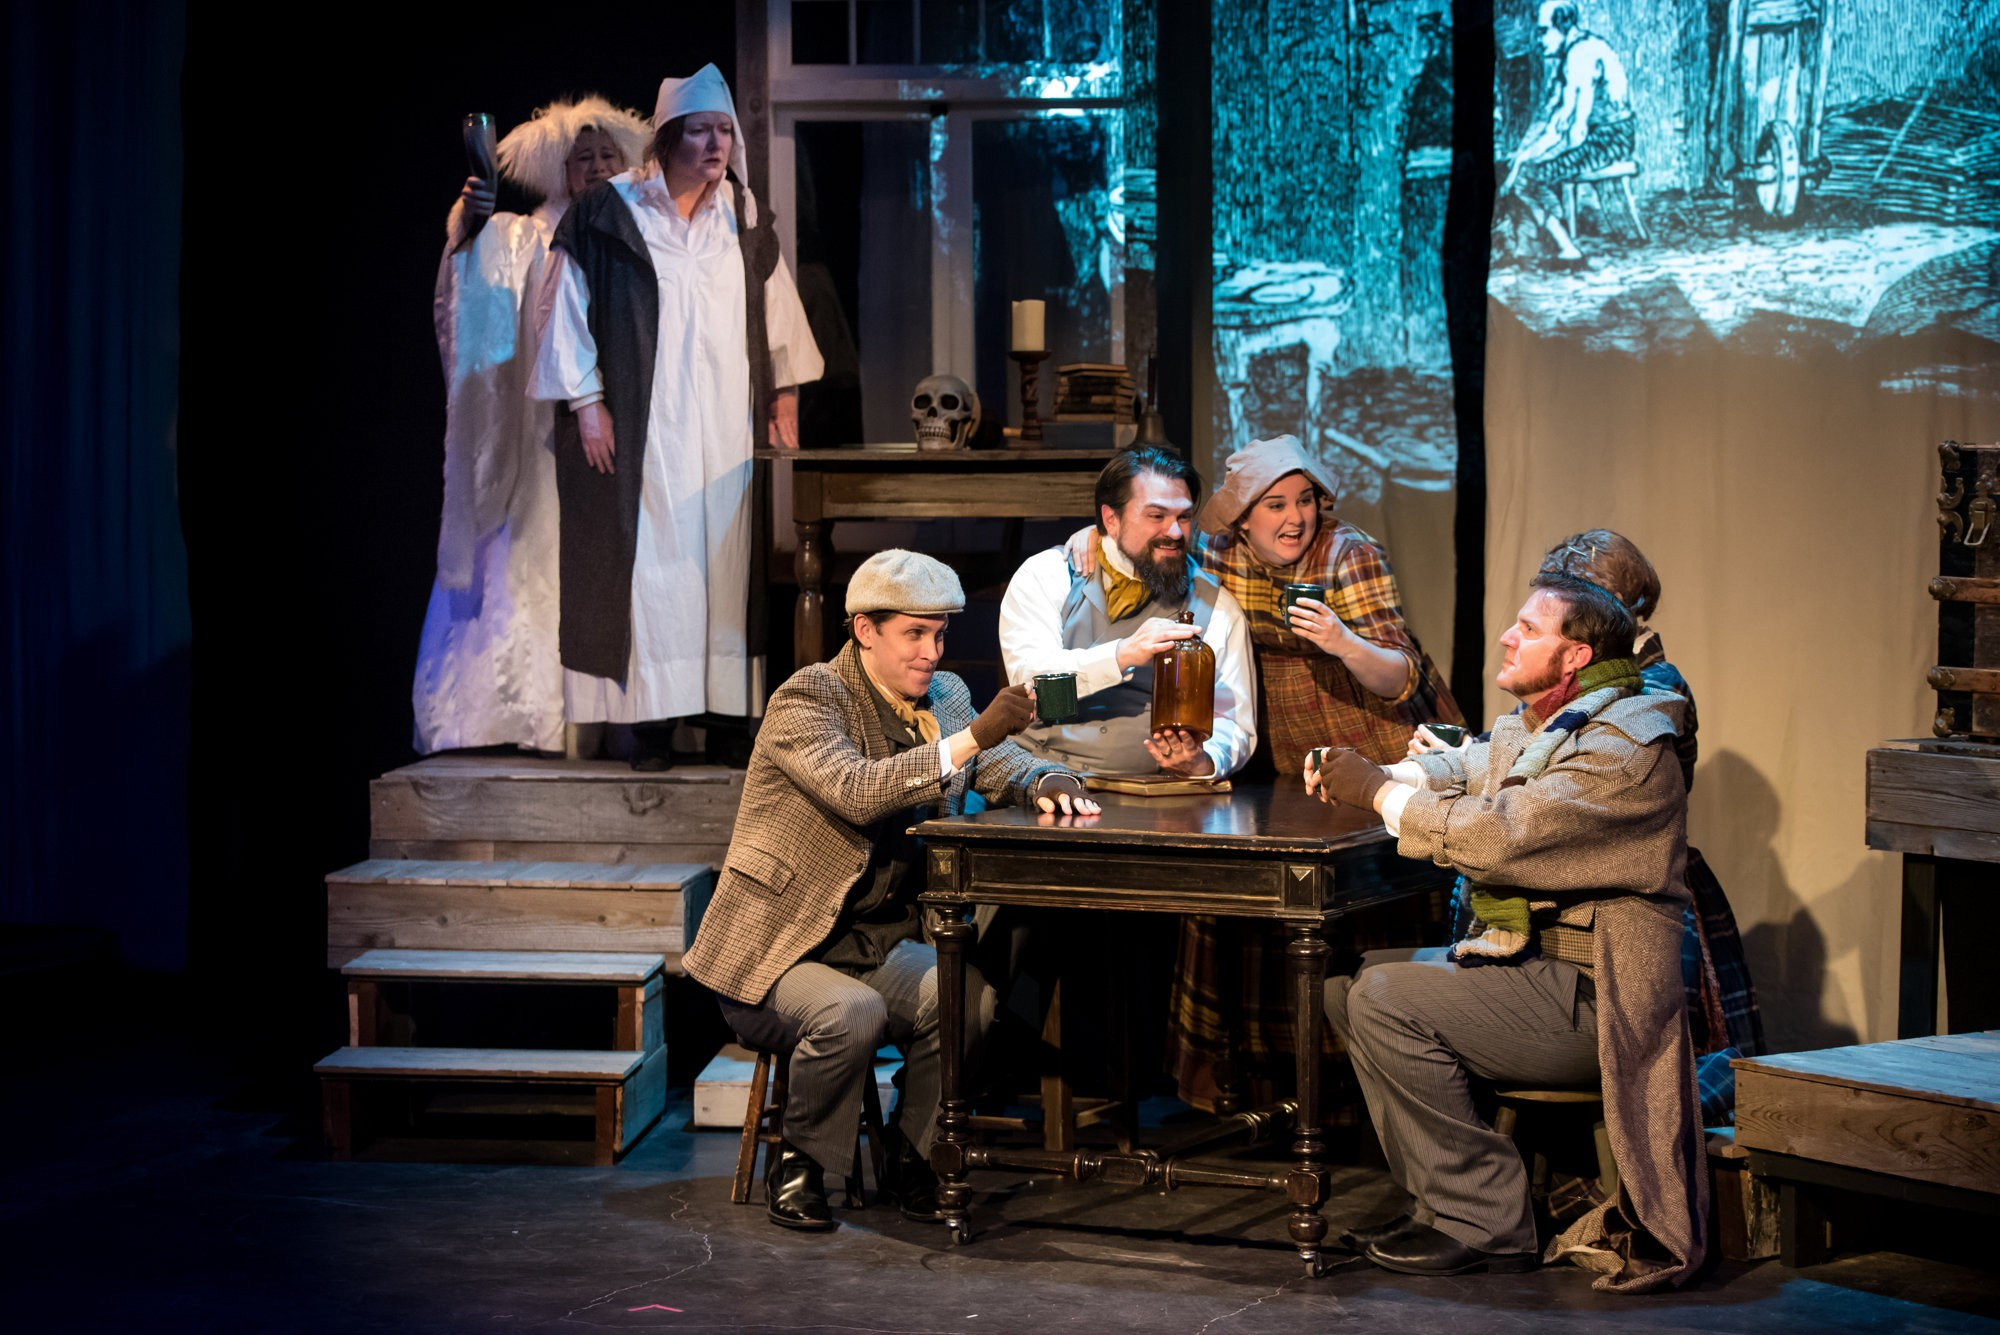 Overly Christmas.Charles Dickens Christmas Carol Gets A Solid But Overly